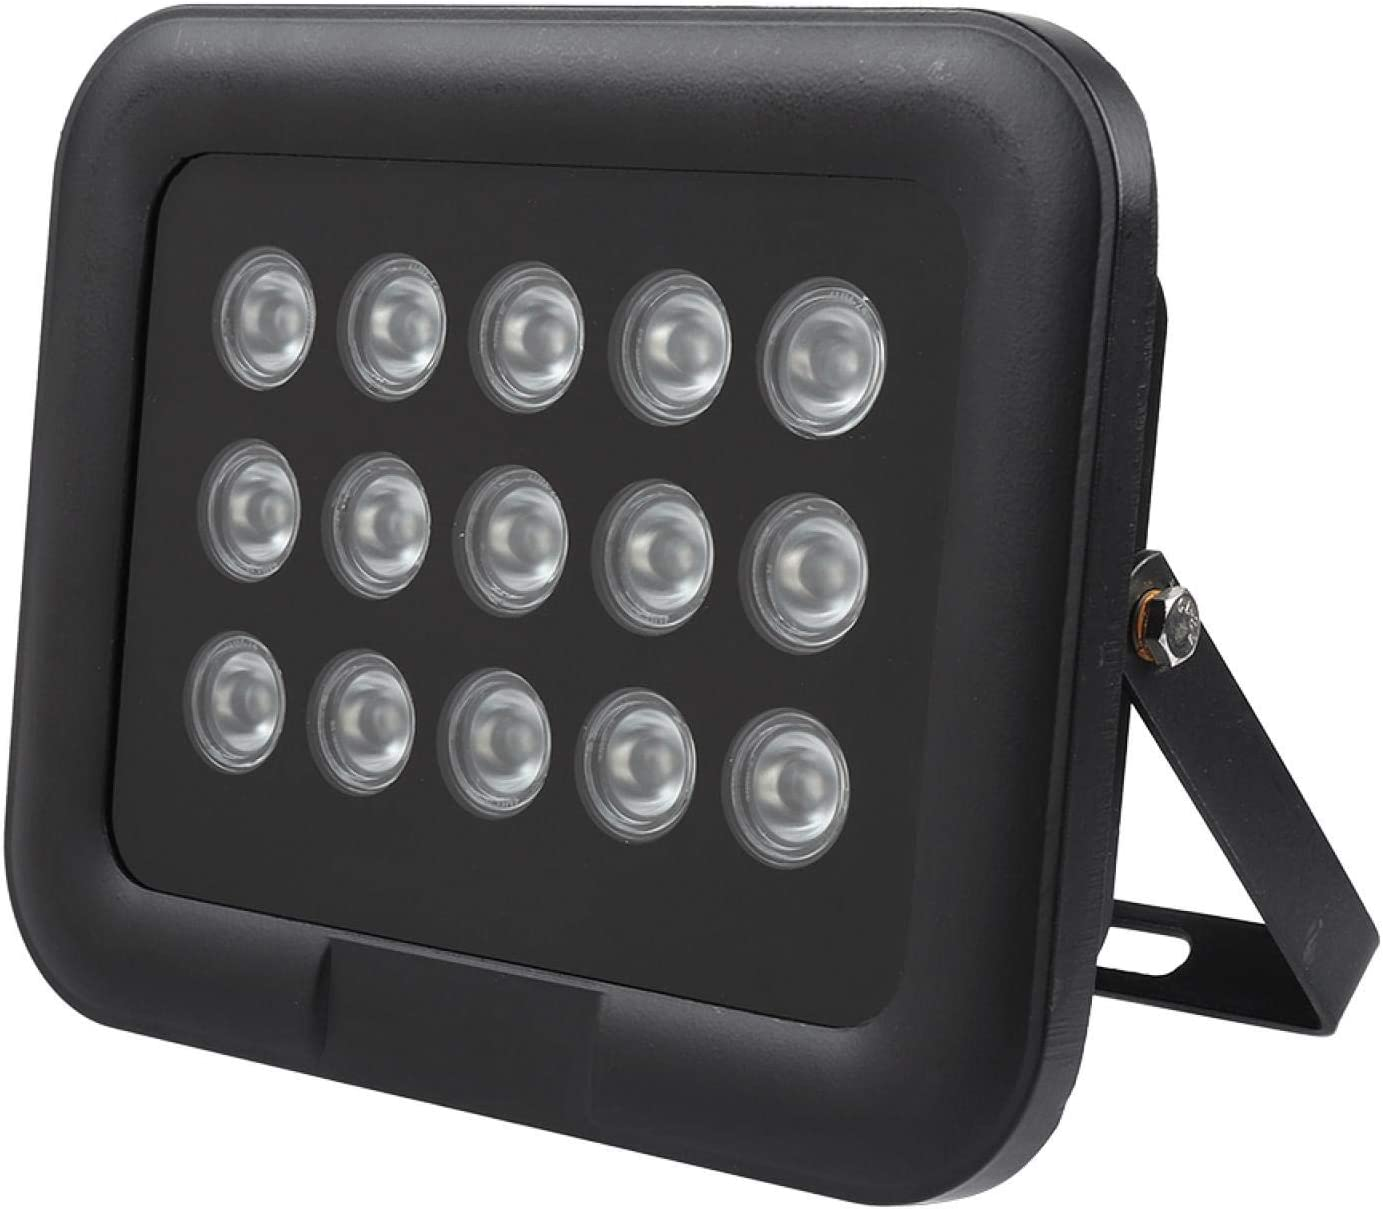 Spring new work WNSC Practical Waterproof Infrared LED Superior Low Consumpt Power Light